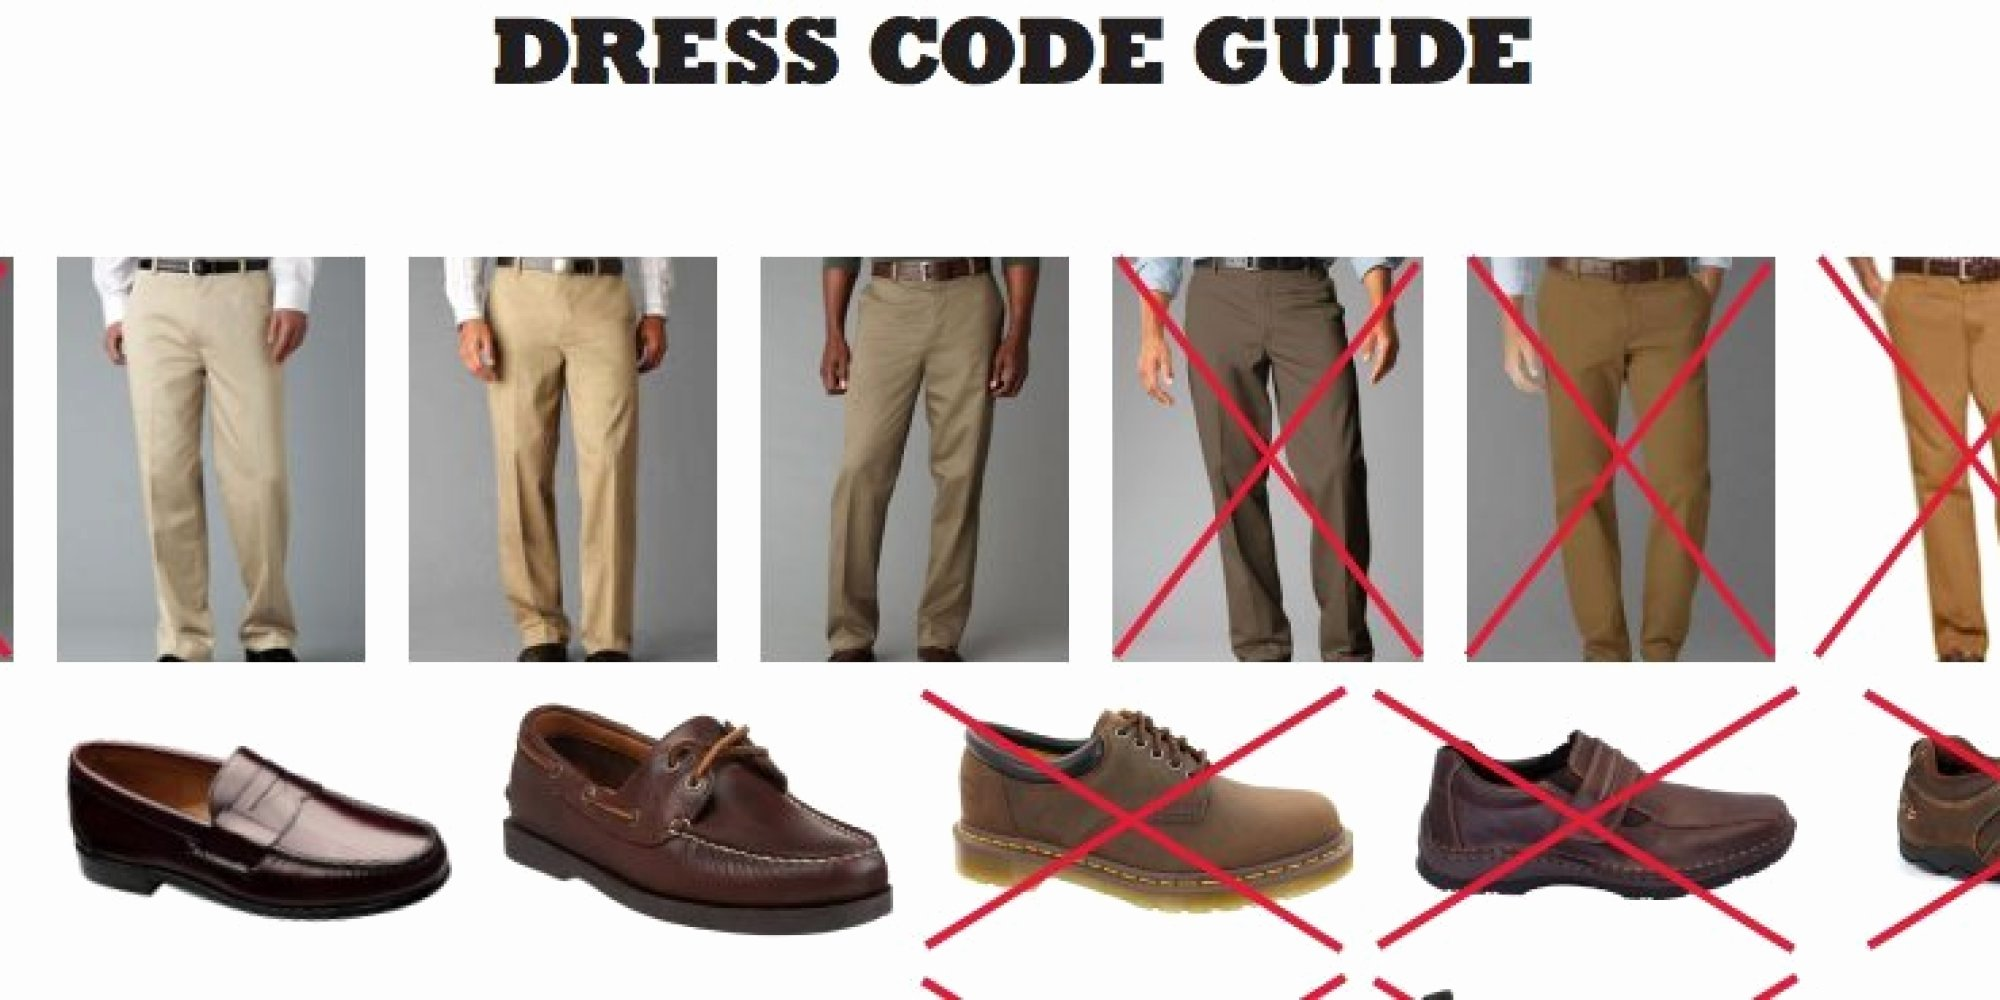 Dress Code Policy Template Lovely Jimmy John S Enforces An Insanely Restrictive Dress Code